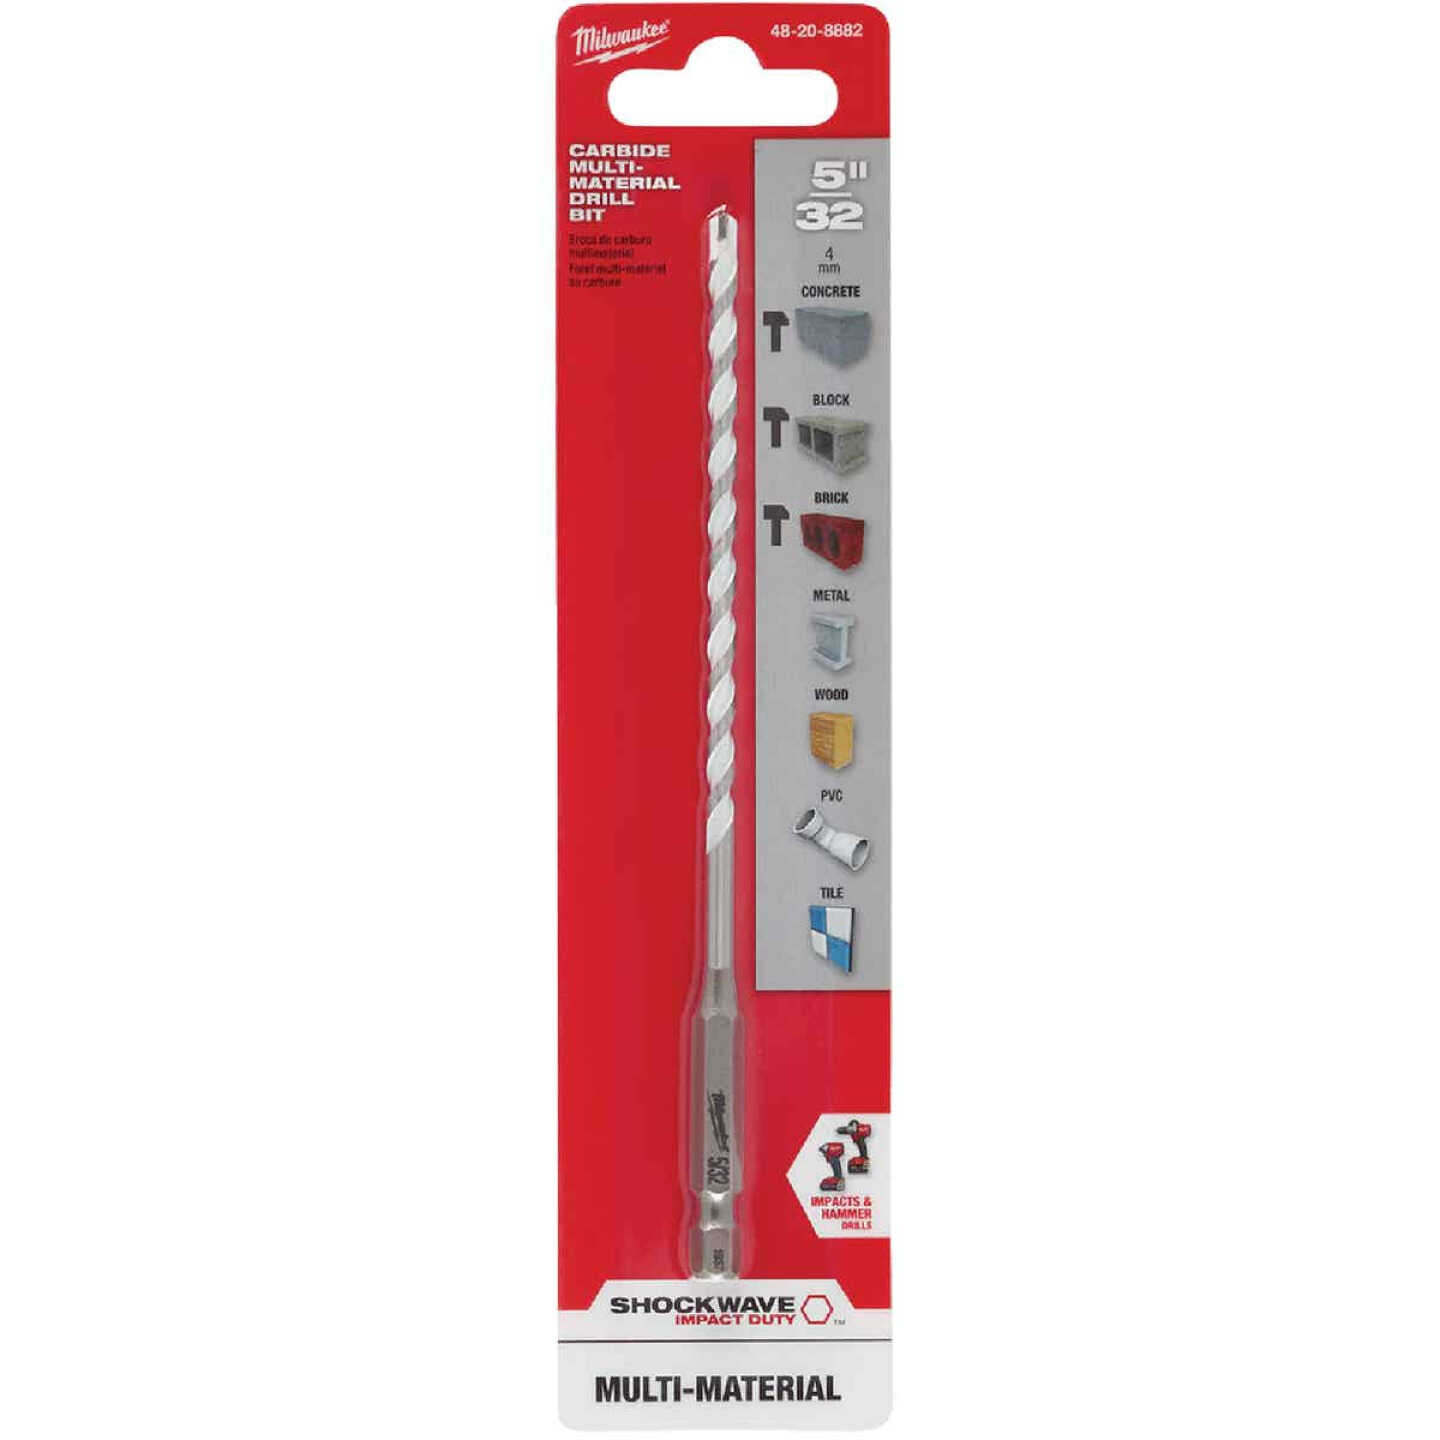 Milwaukee Shockwave 5/32 In. Carbide Multi-Material Hex Shank Drill Bit Image 2